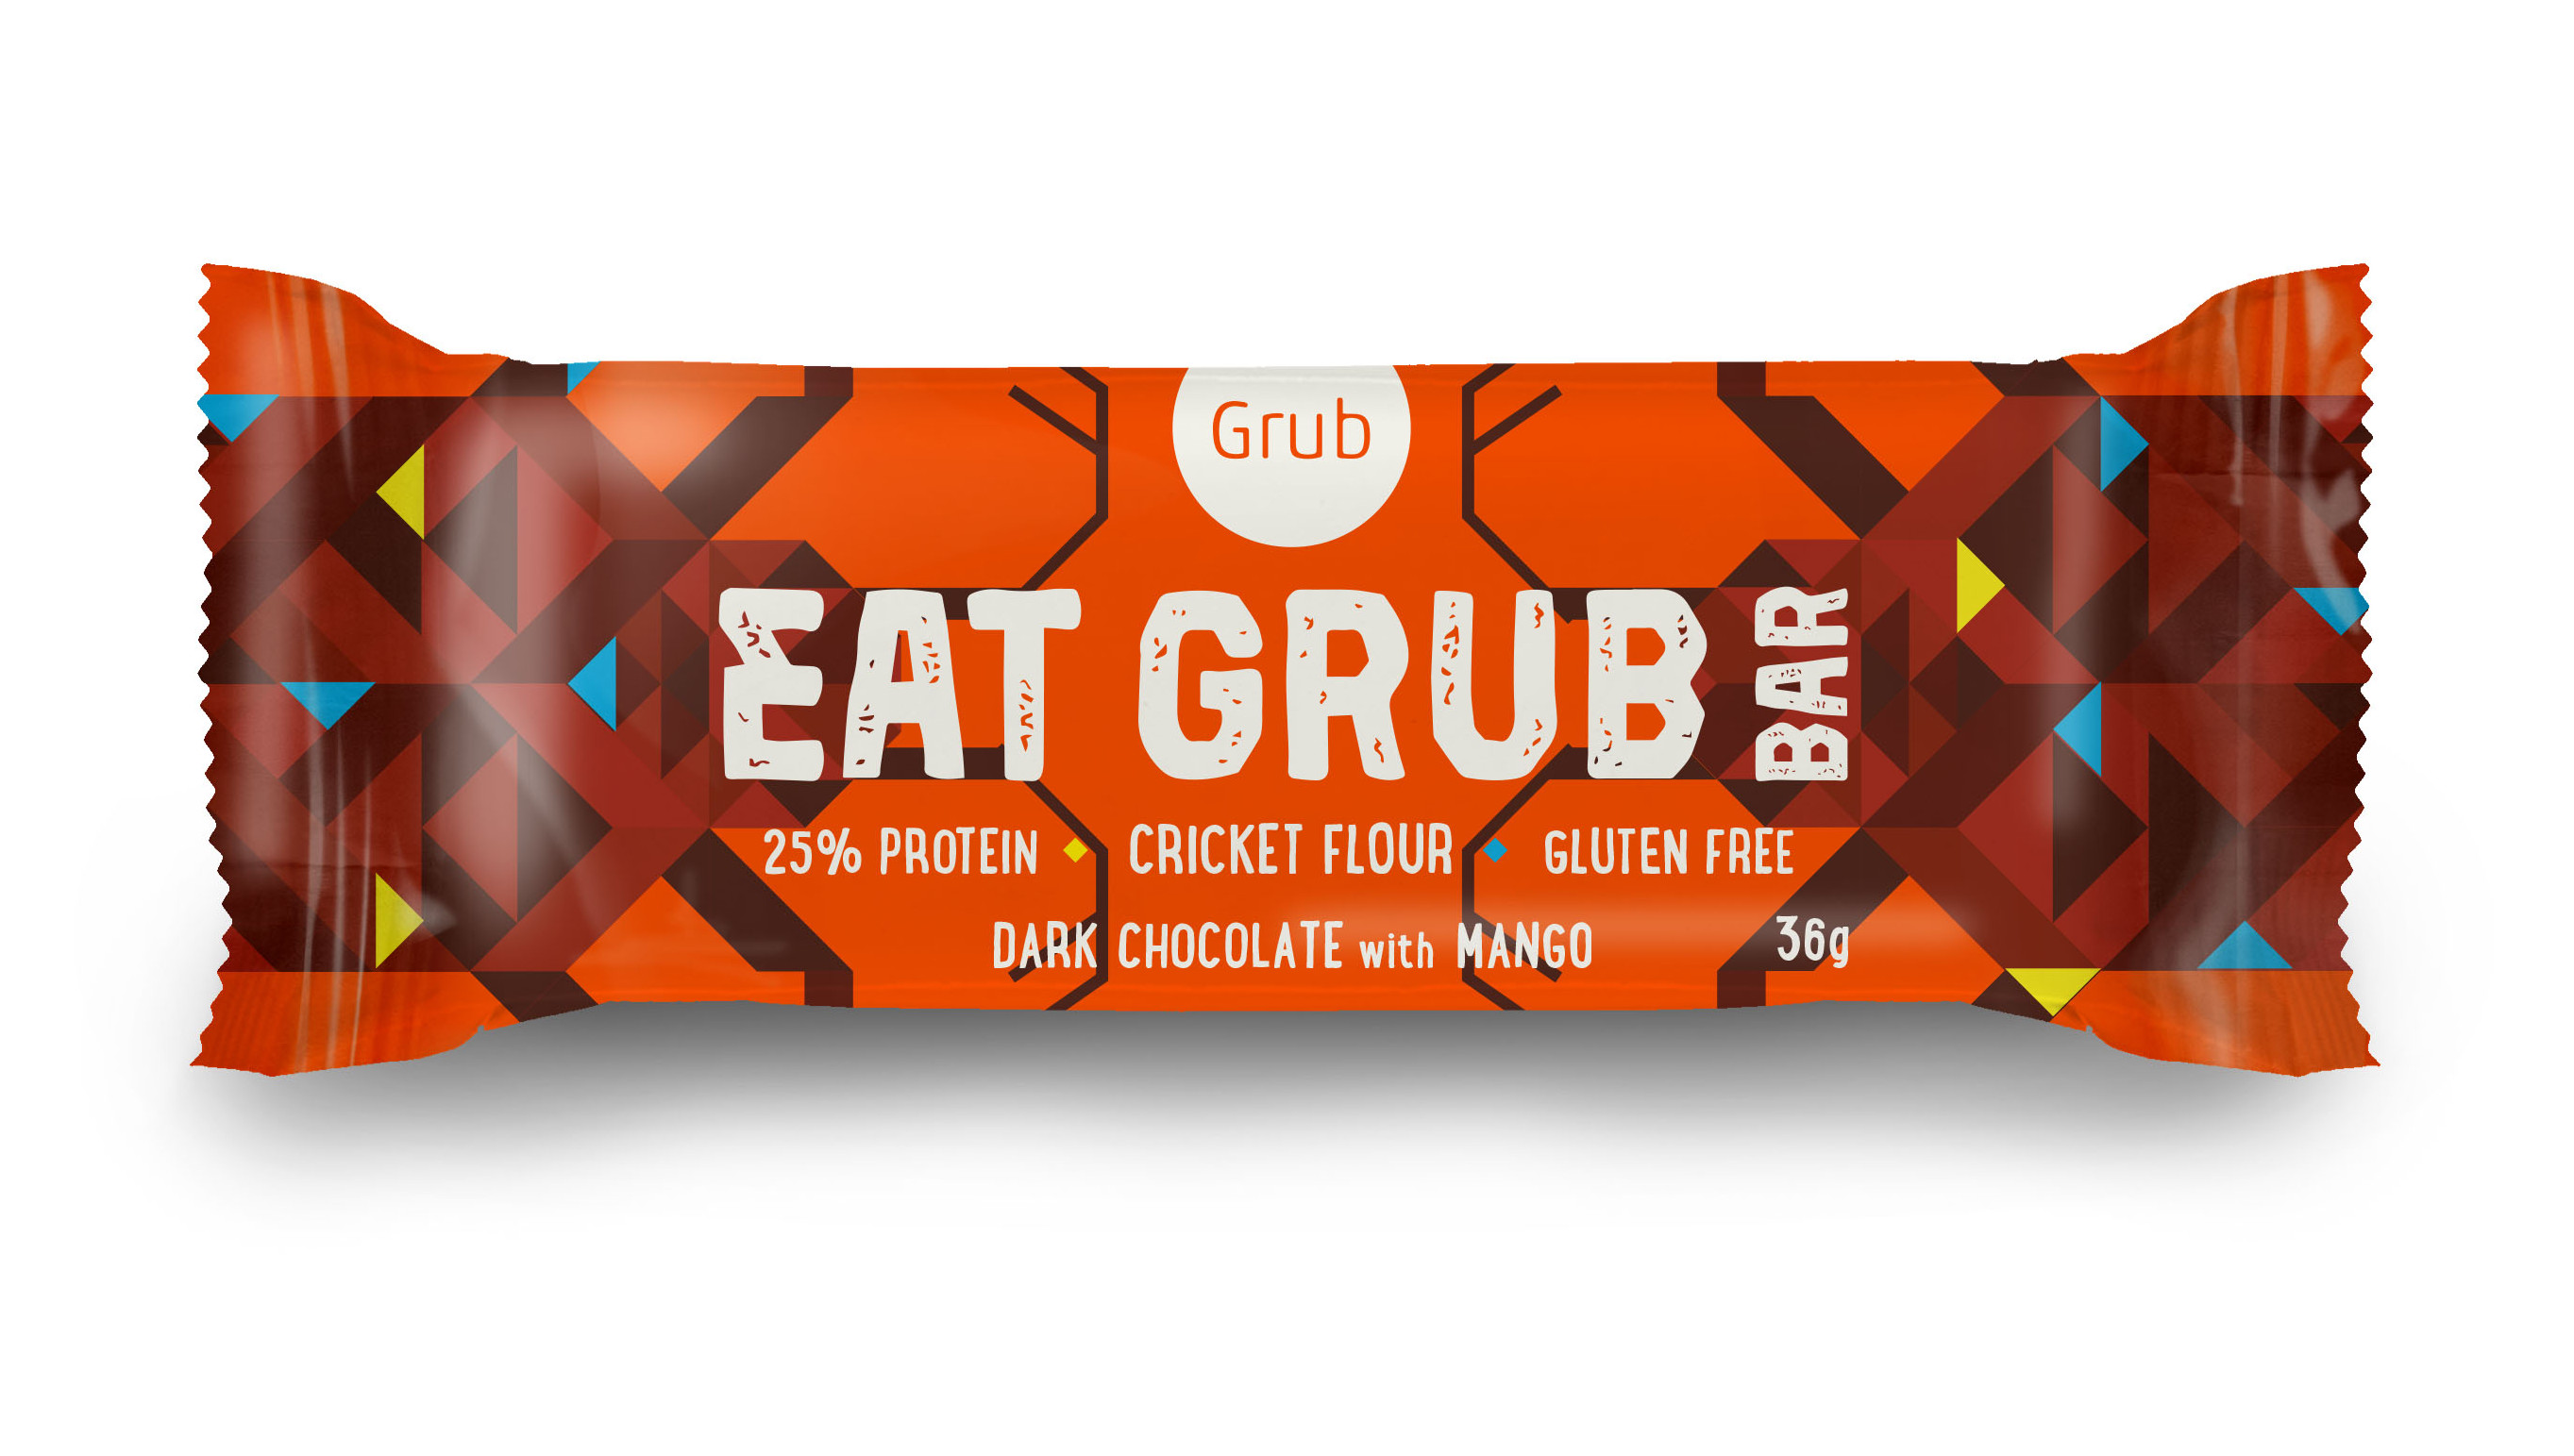 Eat grub bar